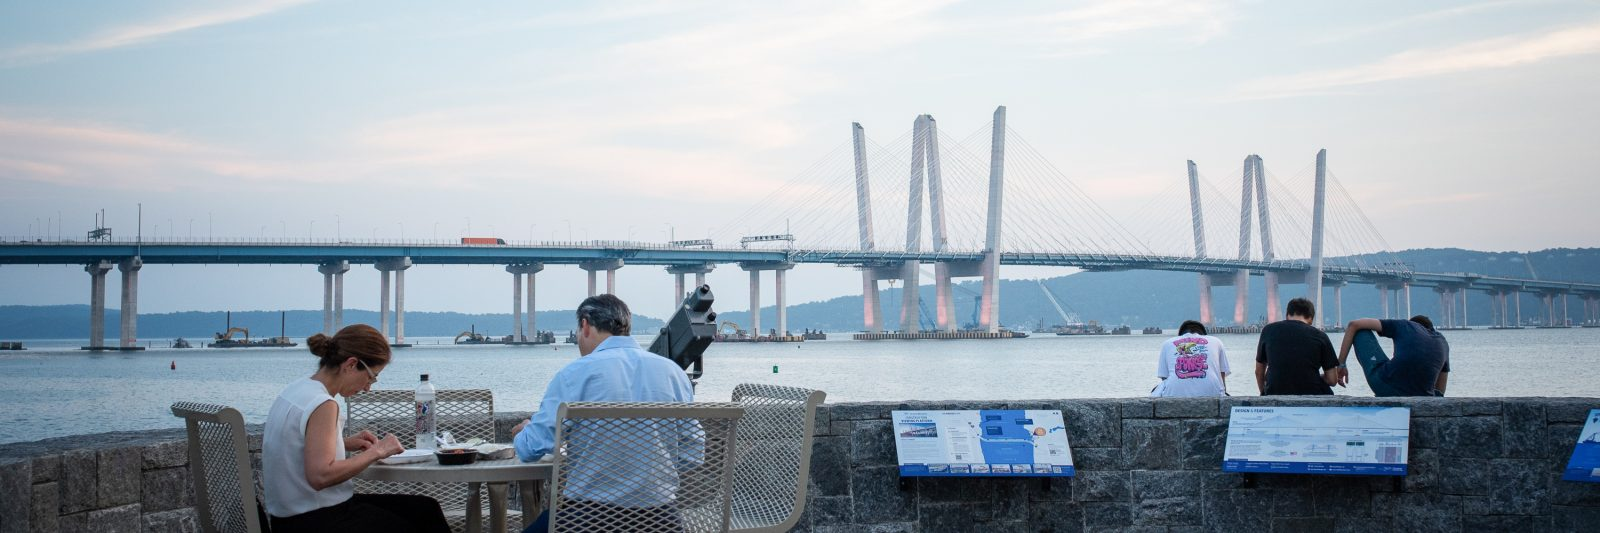 A couple seated at the observation deck at Pierson Park in Tarrytown, New York, with Mario Cuomo Bridge in background.